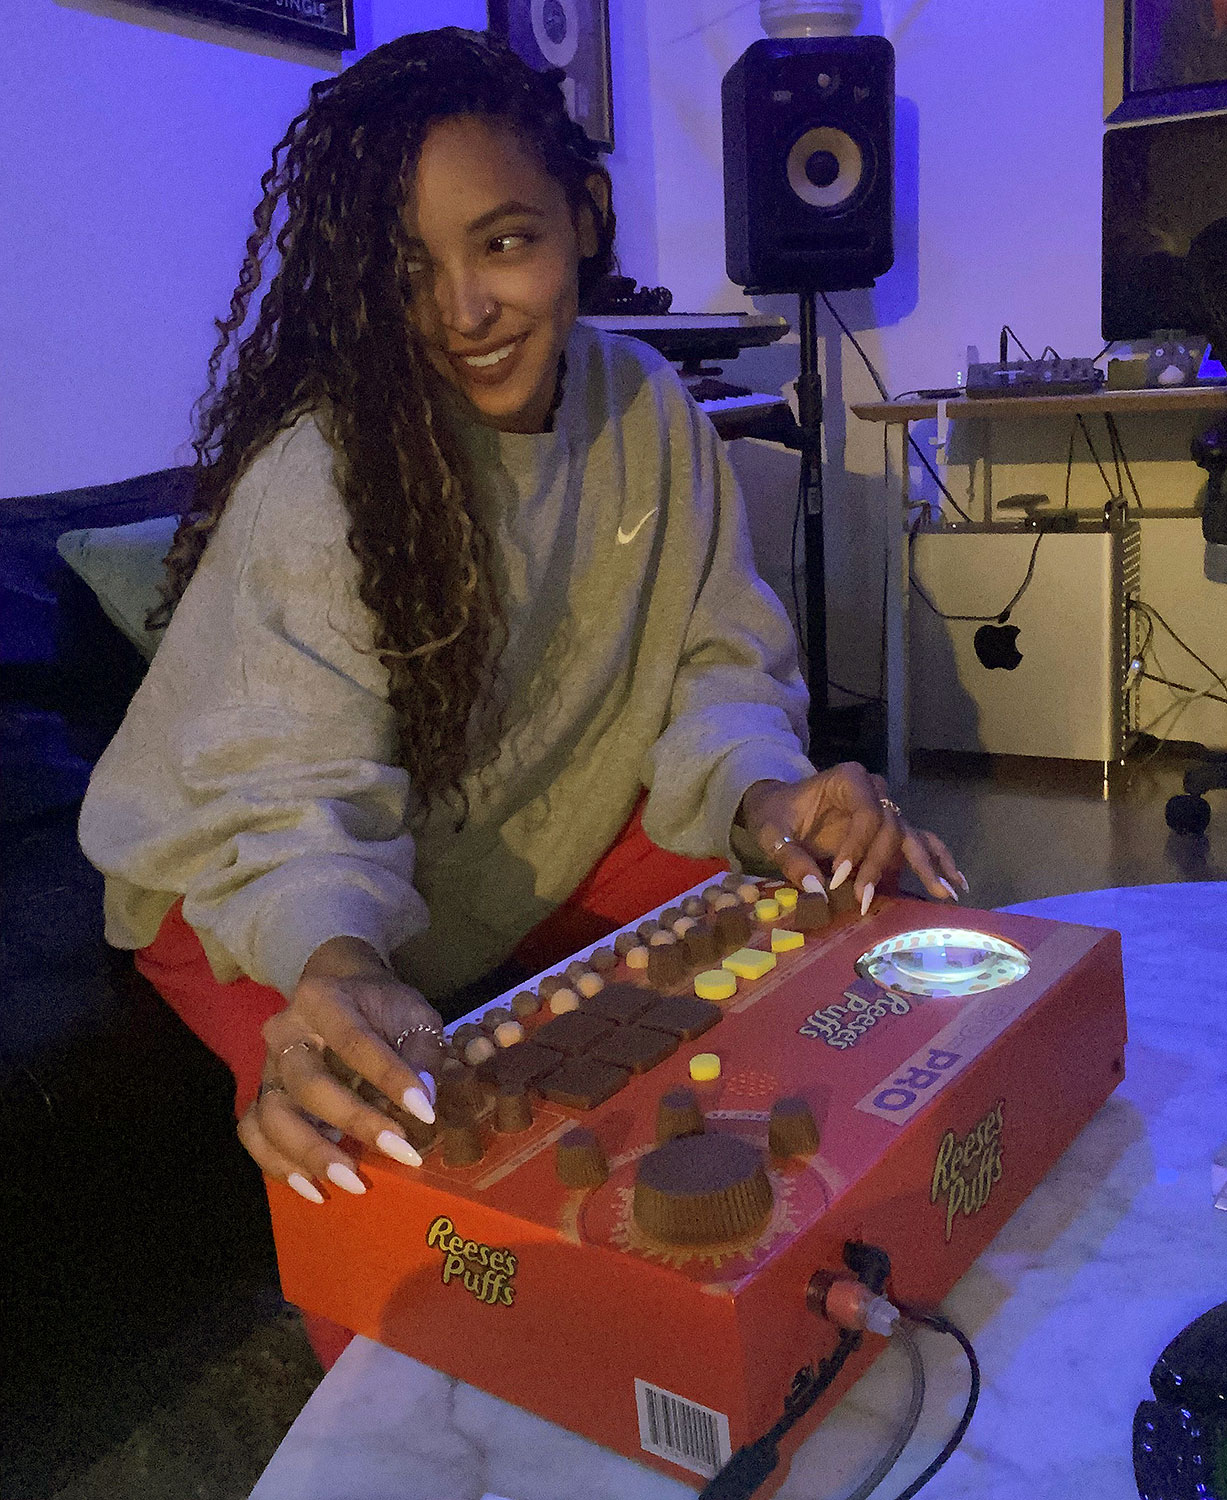 Tinashe teams up with Reese's Puffs to release music boxes